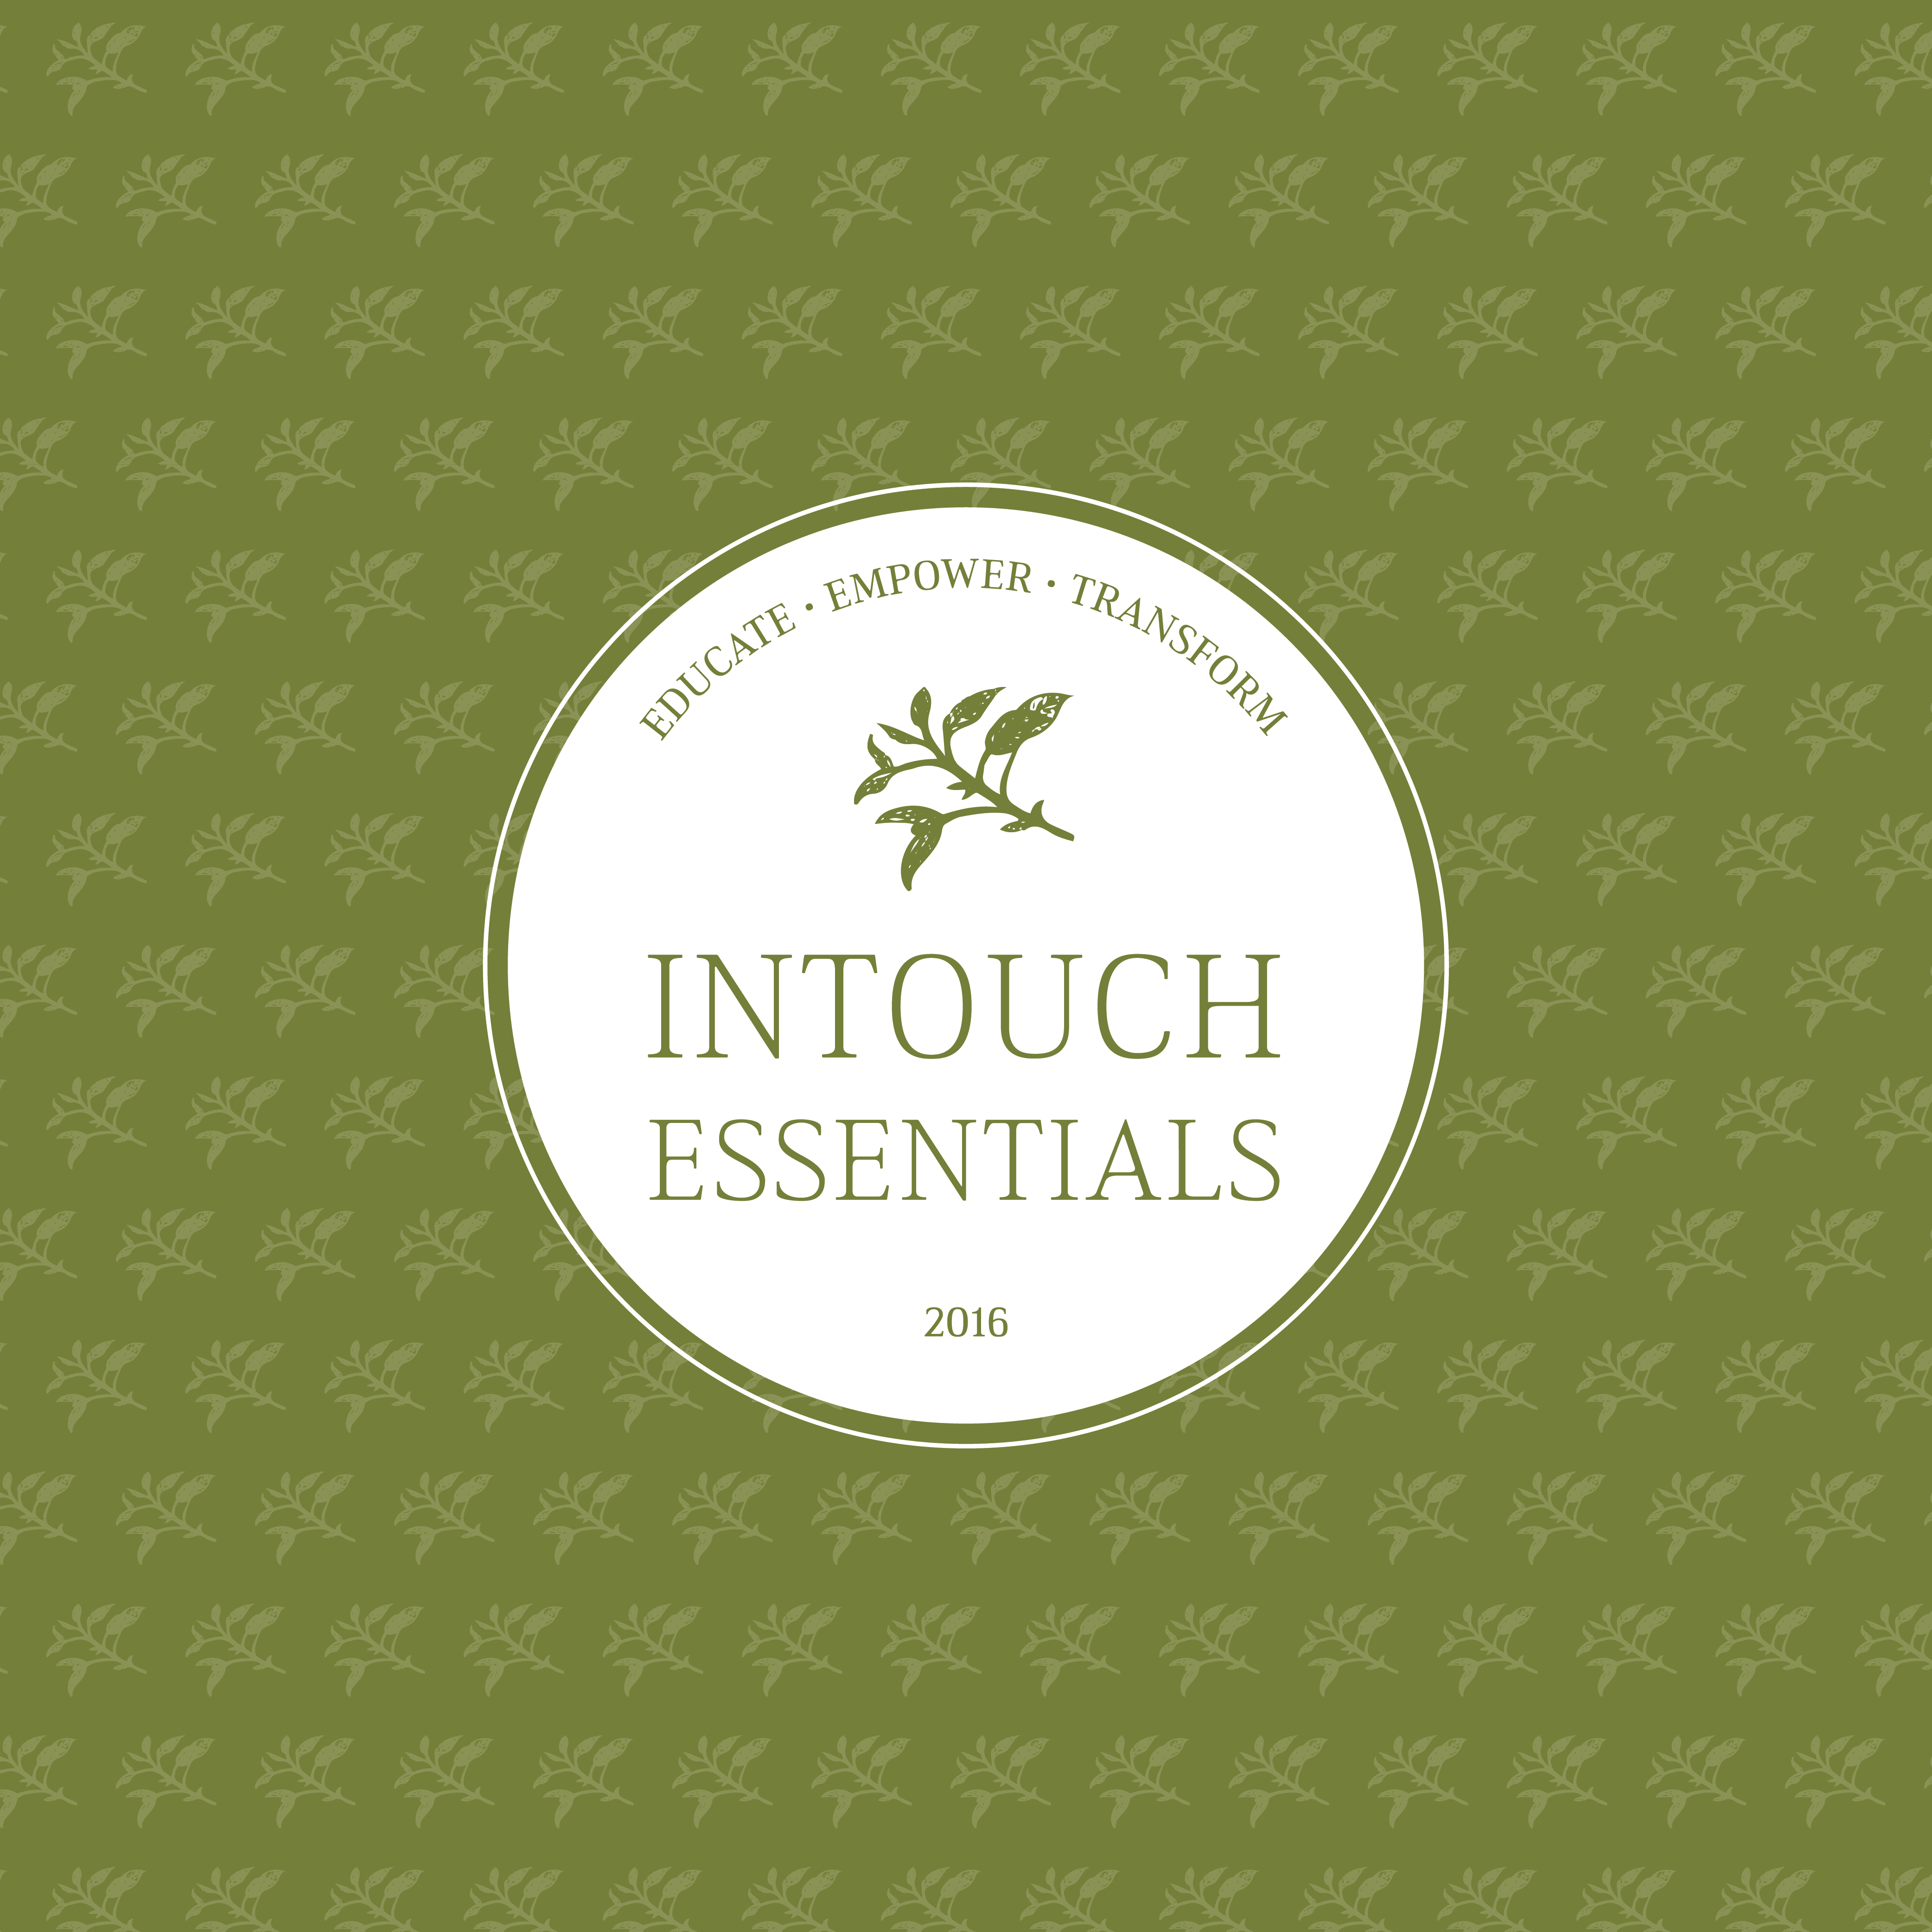 Logos and Branding for Intouch Essentials